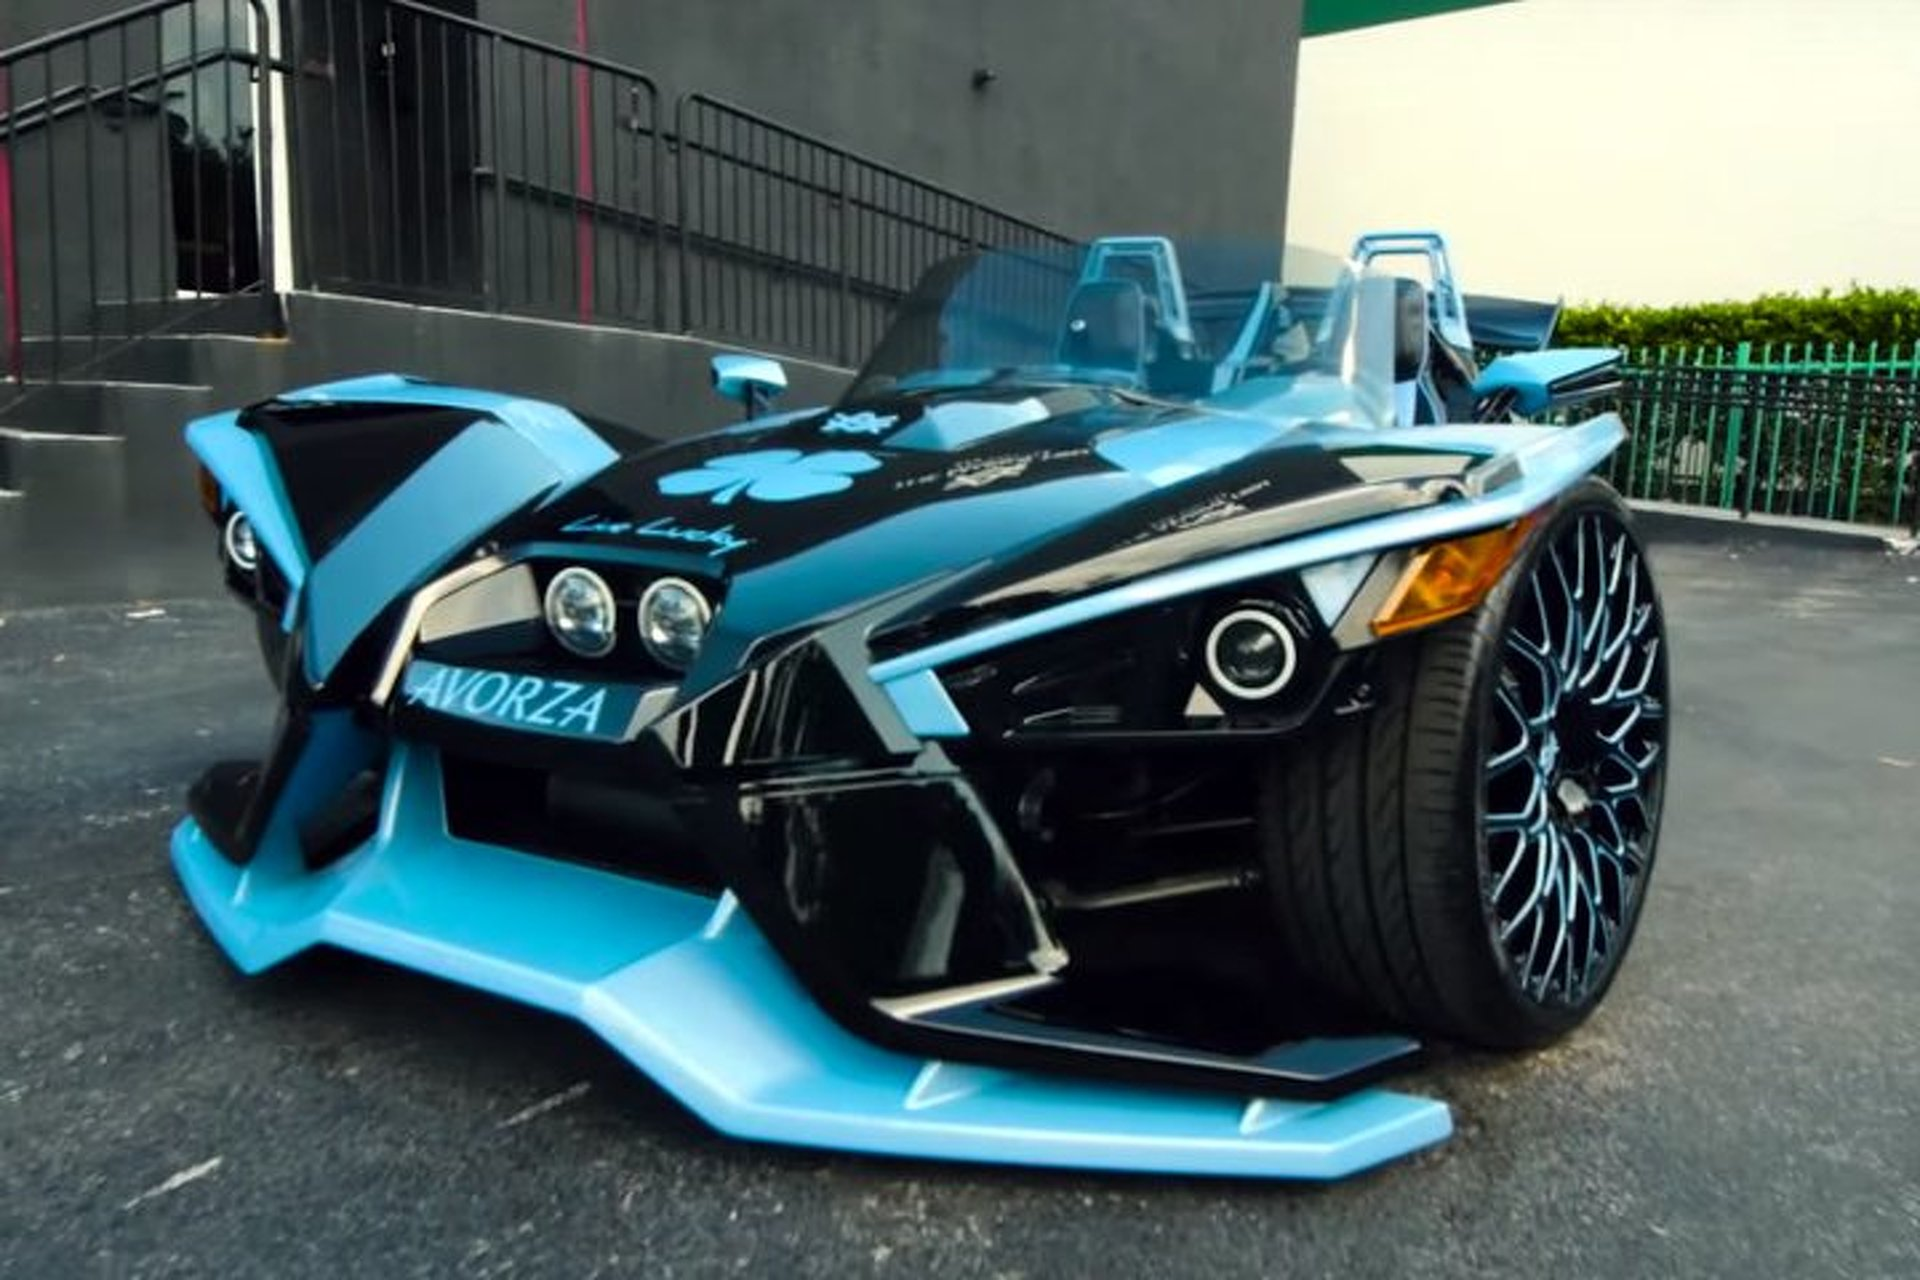 Three Wheeled Polaris Slingshot Customized With Help From